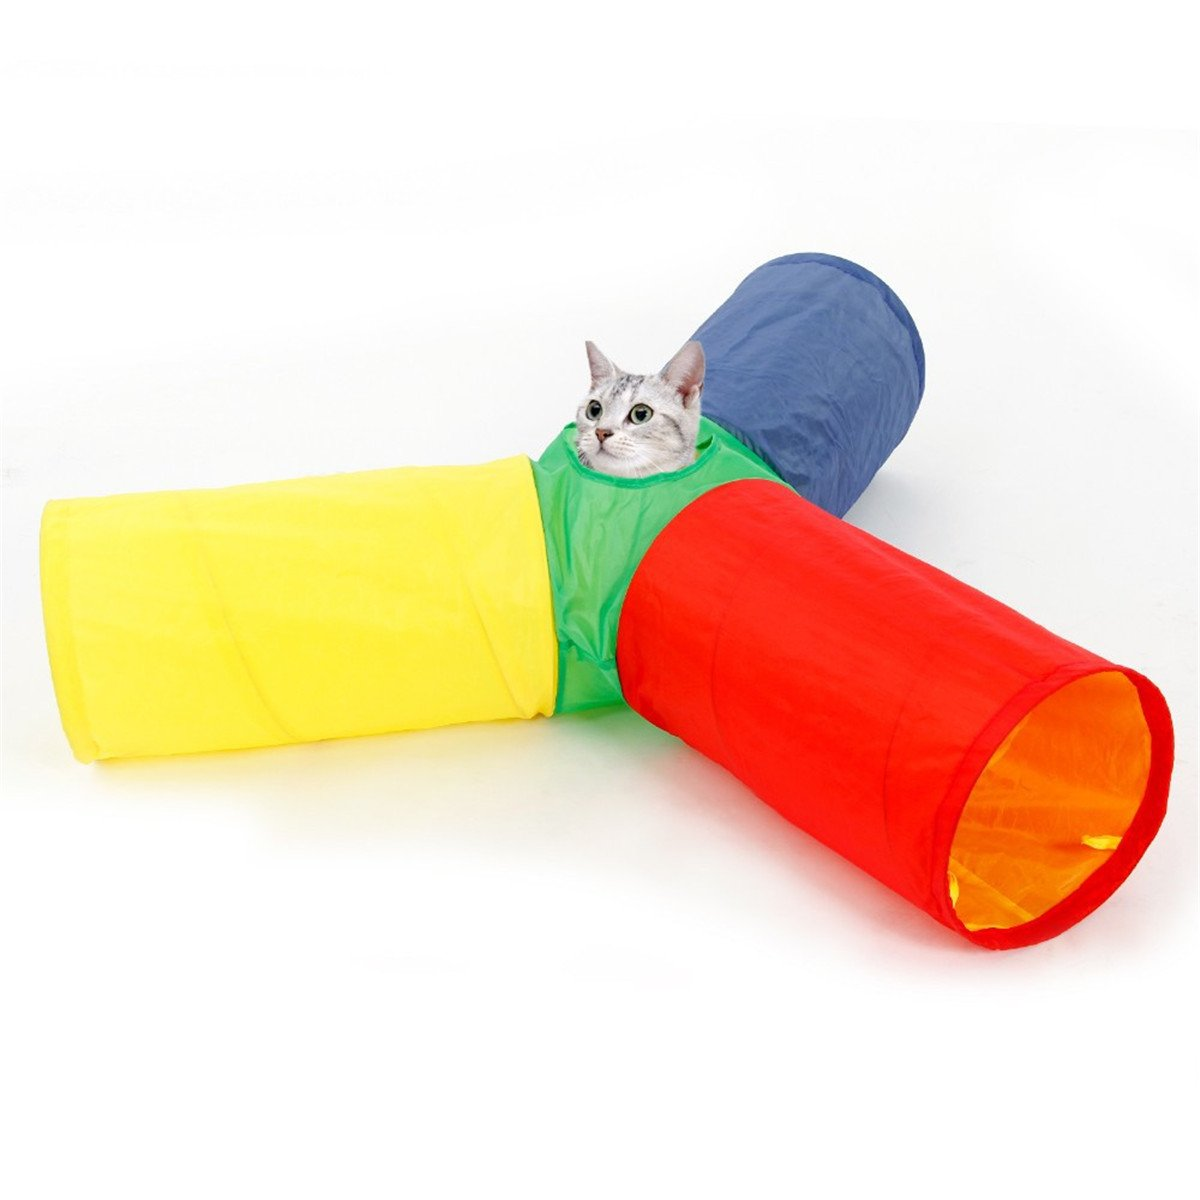 3 Way Pet Cat Tunnel Rainbow Color Pawz Road Crinkle Kitten Play Toys Collapsible With Peek Hole Interactive Tube Tunnel For Small Medium and Large Cats Speedy Pet